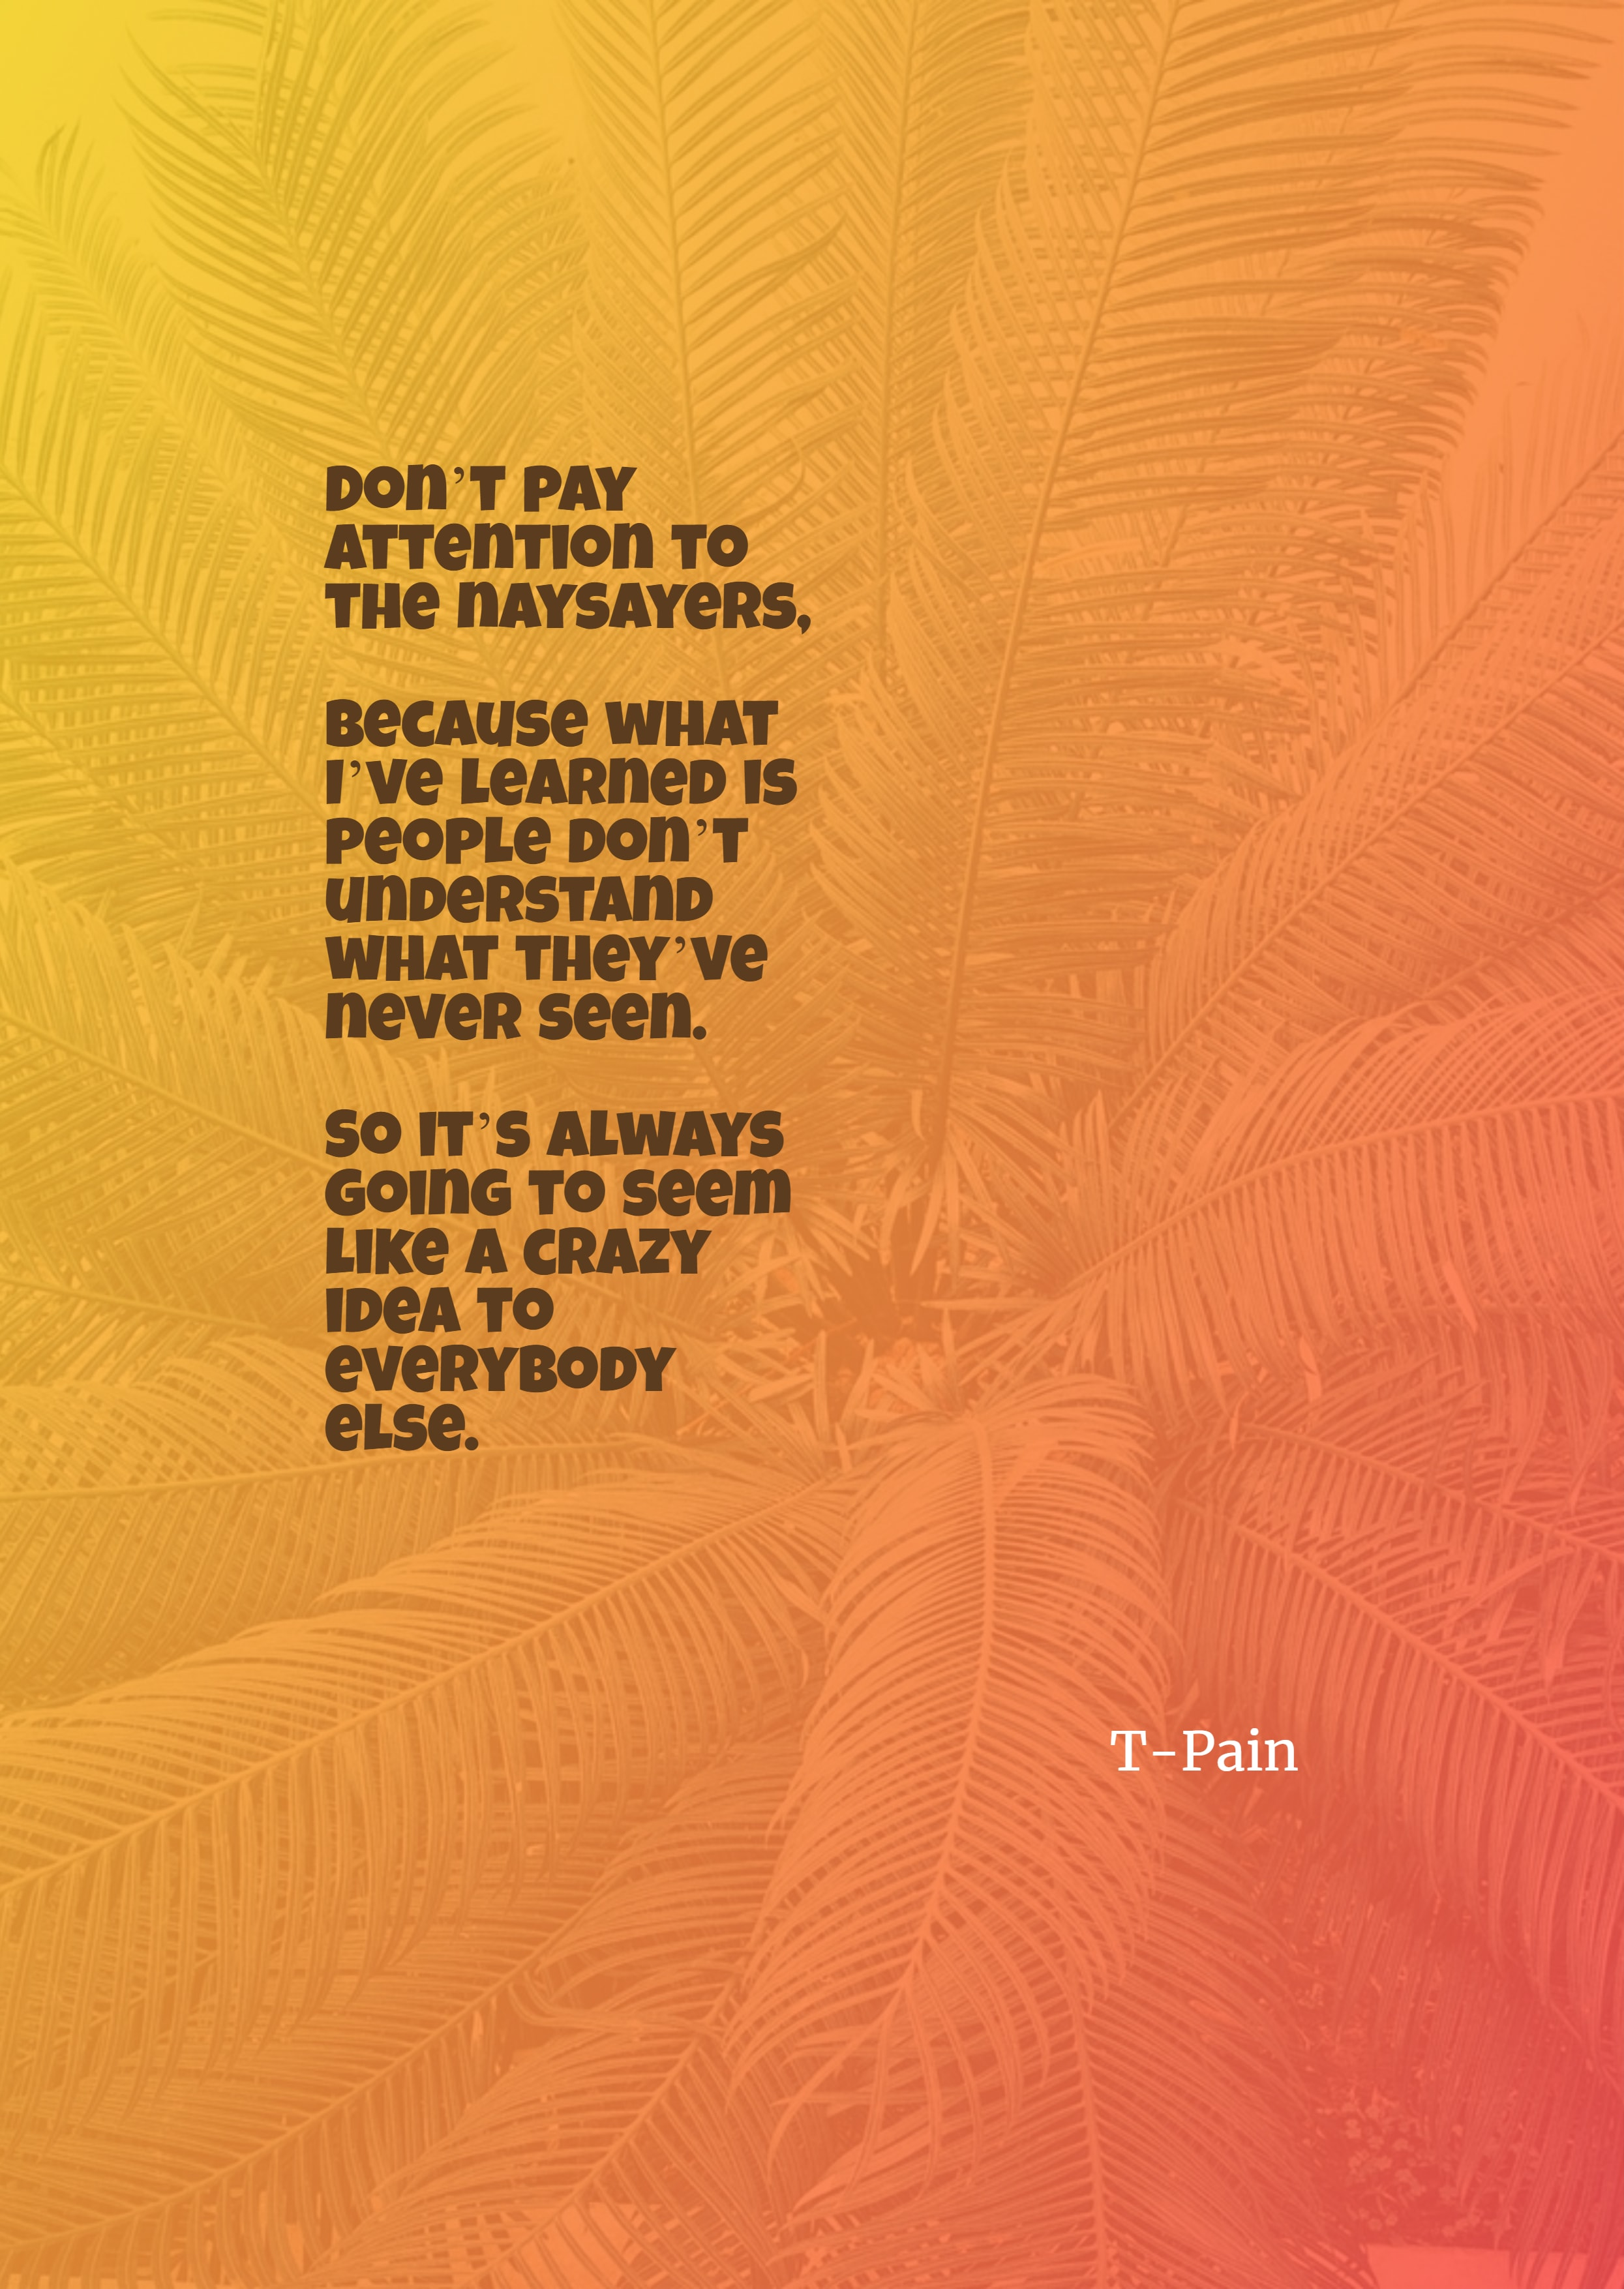 Quotes image of Don't pay attention to the naysayers, because what I've learned is people don't understand what they've never seen. So it's always going to seem like a crazy idea to everybody else.